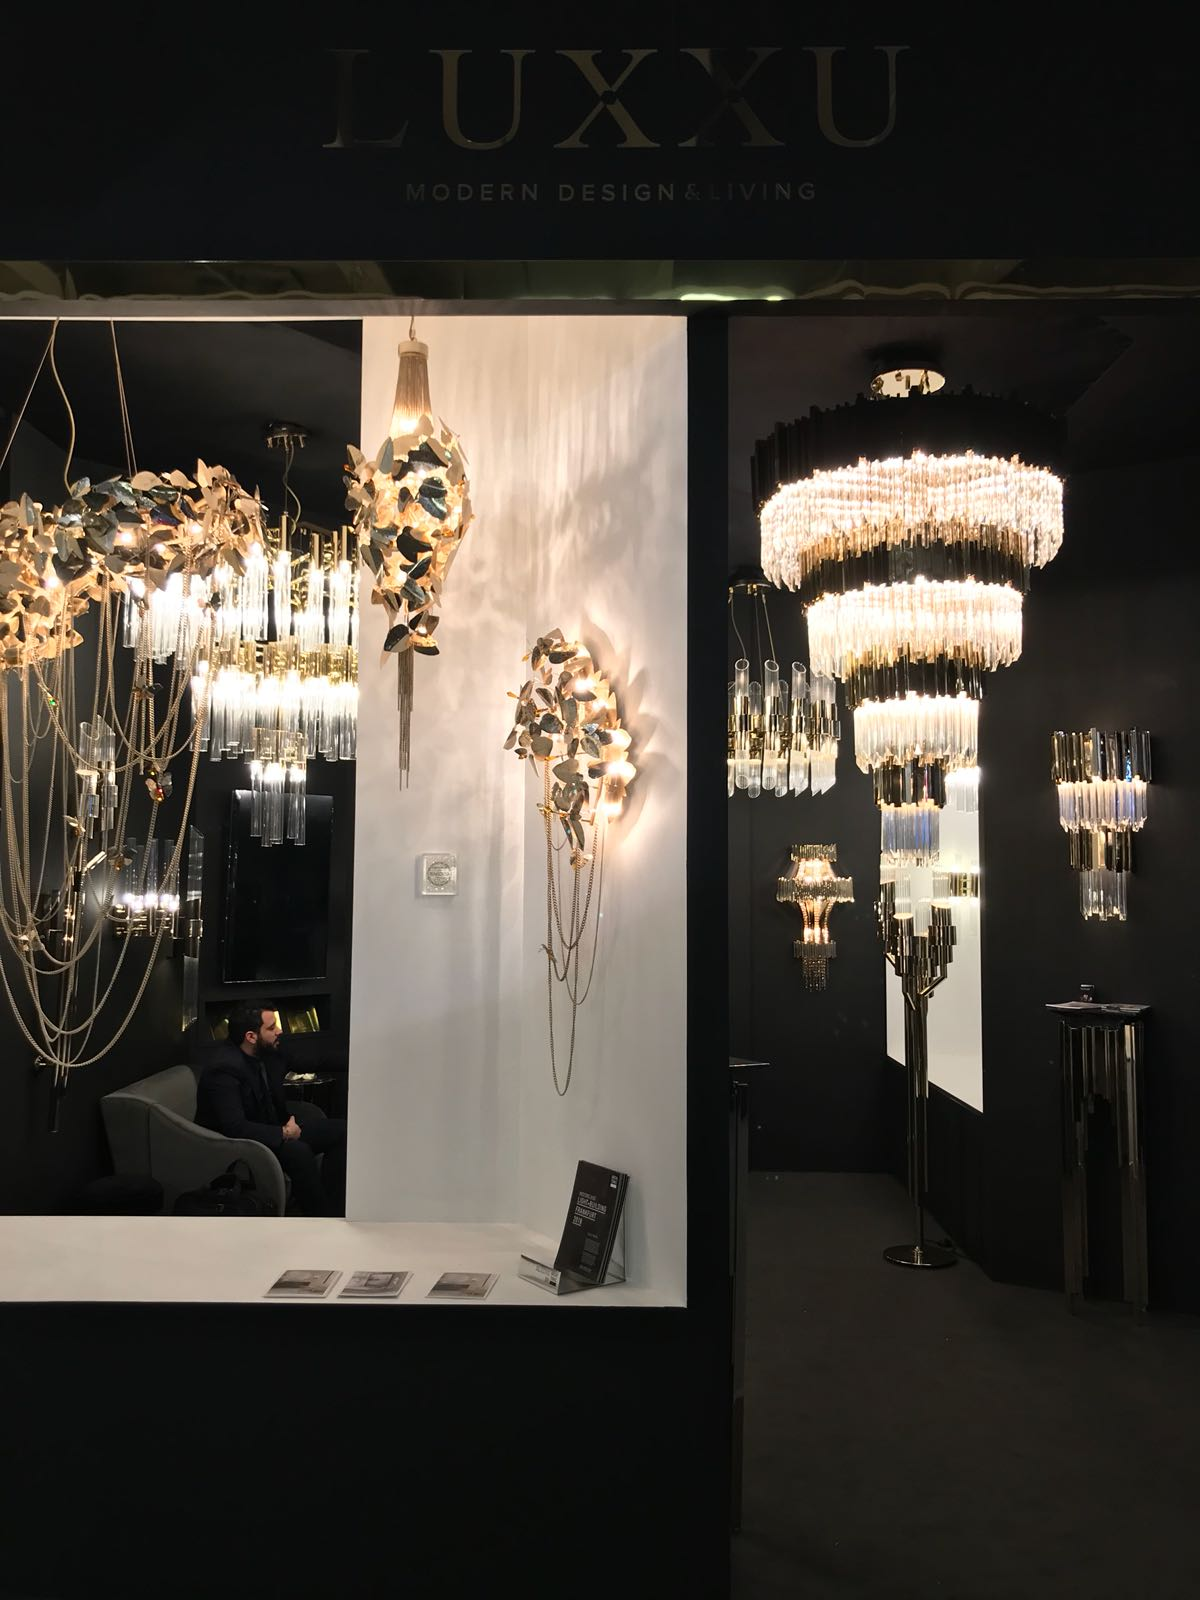 LUXXU's Highlights From Light + Building 2018 Concept Stores in Frankfurt 4 Concept Stores in Frankfurt You Need To Visit LUXXUs Highlights From Light Building 2018 01 Concept Stores in Frankfurt 4 Concept Stores in Frankfurt You Need To Visit LUXXUs Highlights From Light Building 2018 01